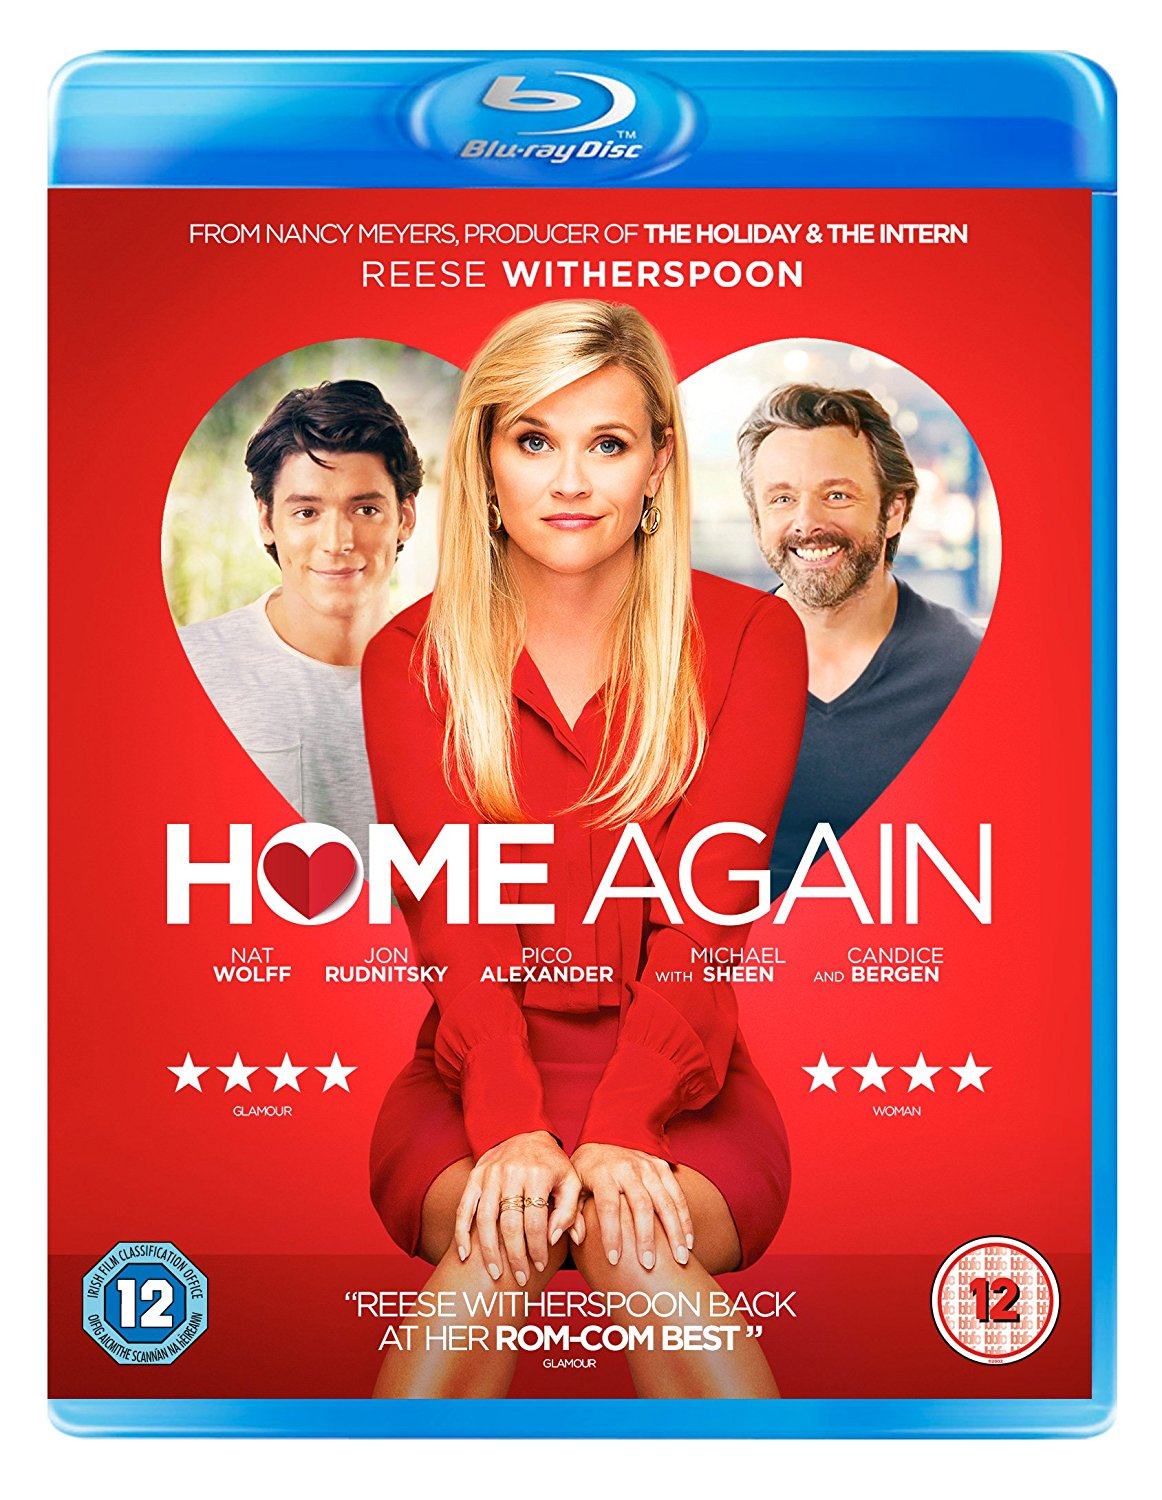 Home Again starring #ReeseWitherspoon & #MichaelSheen and directed by Hallie Meyers-Shyer is heading to #DVD, Blu-ray and Digital Download